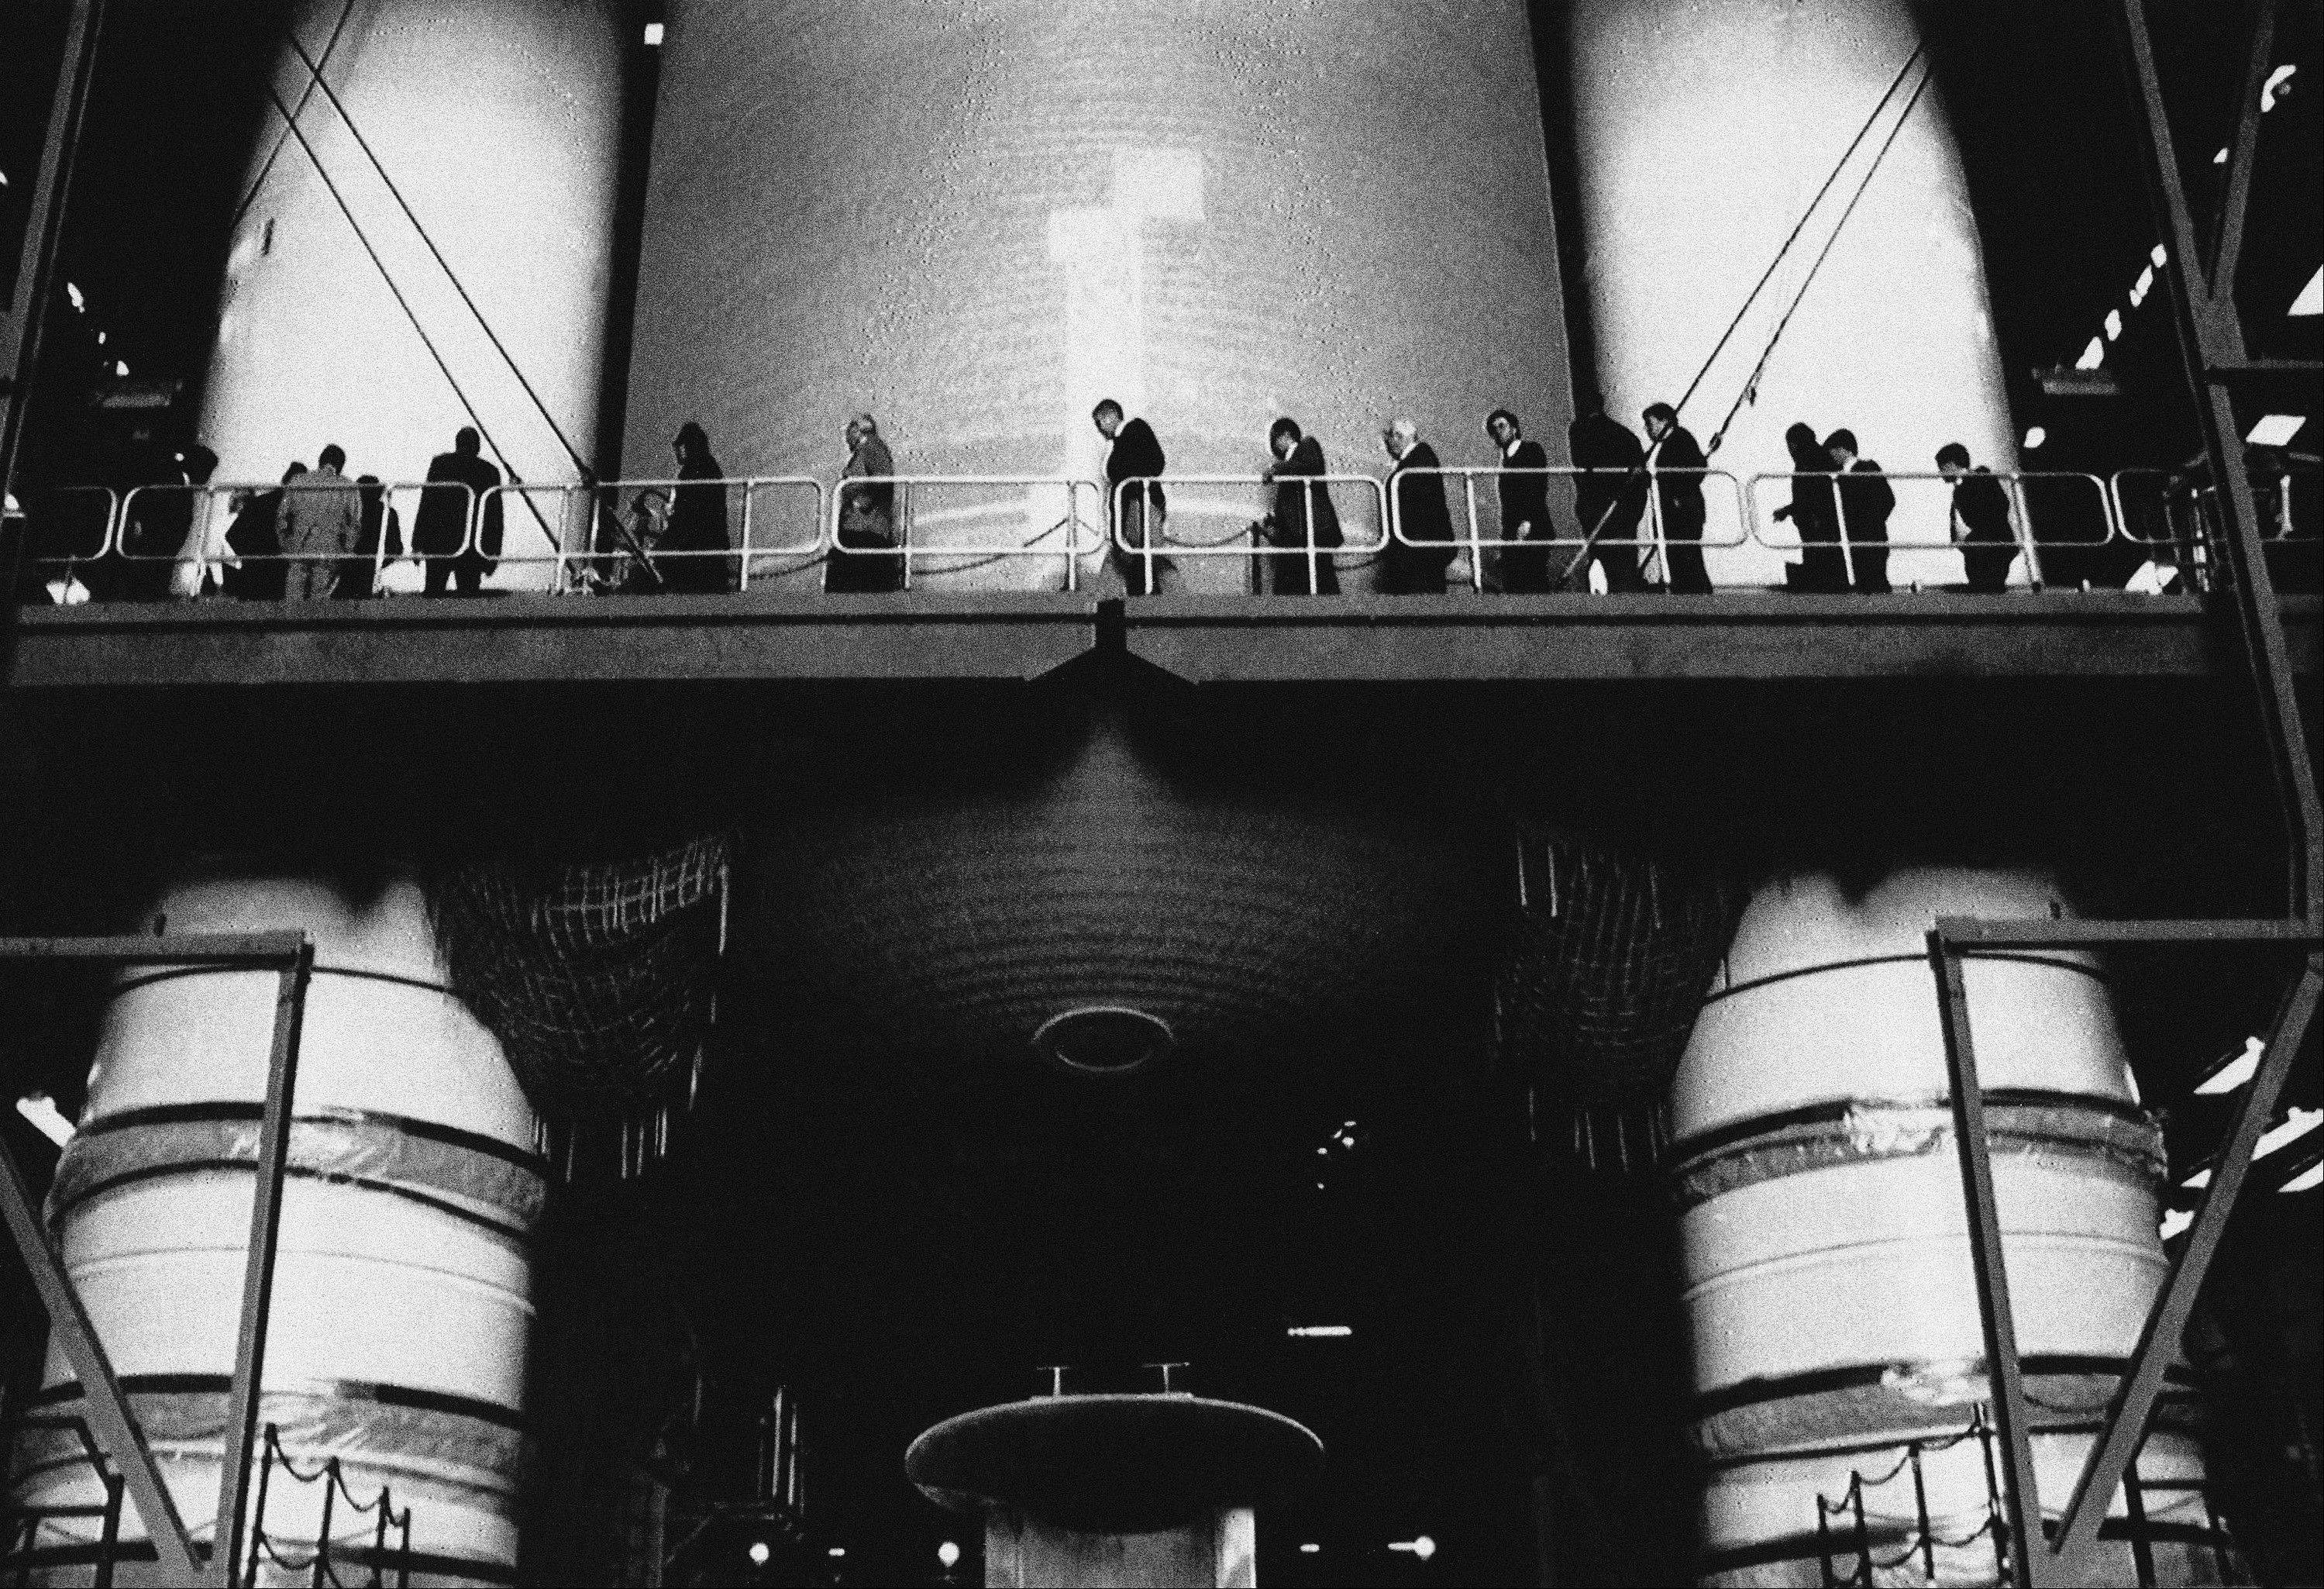 Members of the Presidential Commission on the Space Shuttle Challenger Accident walk past the external tank and solid rocket boosters of a shuttle being fitted in the Vehicle Assembly building at Kennedy Space Center in Cape Canaveral, Fla.